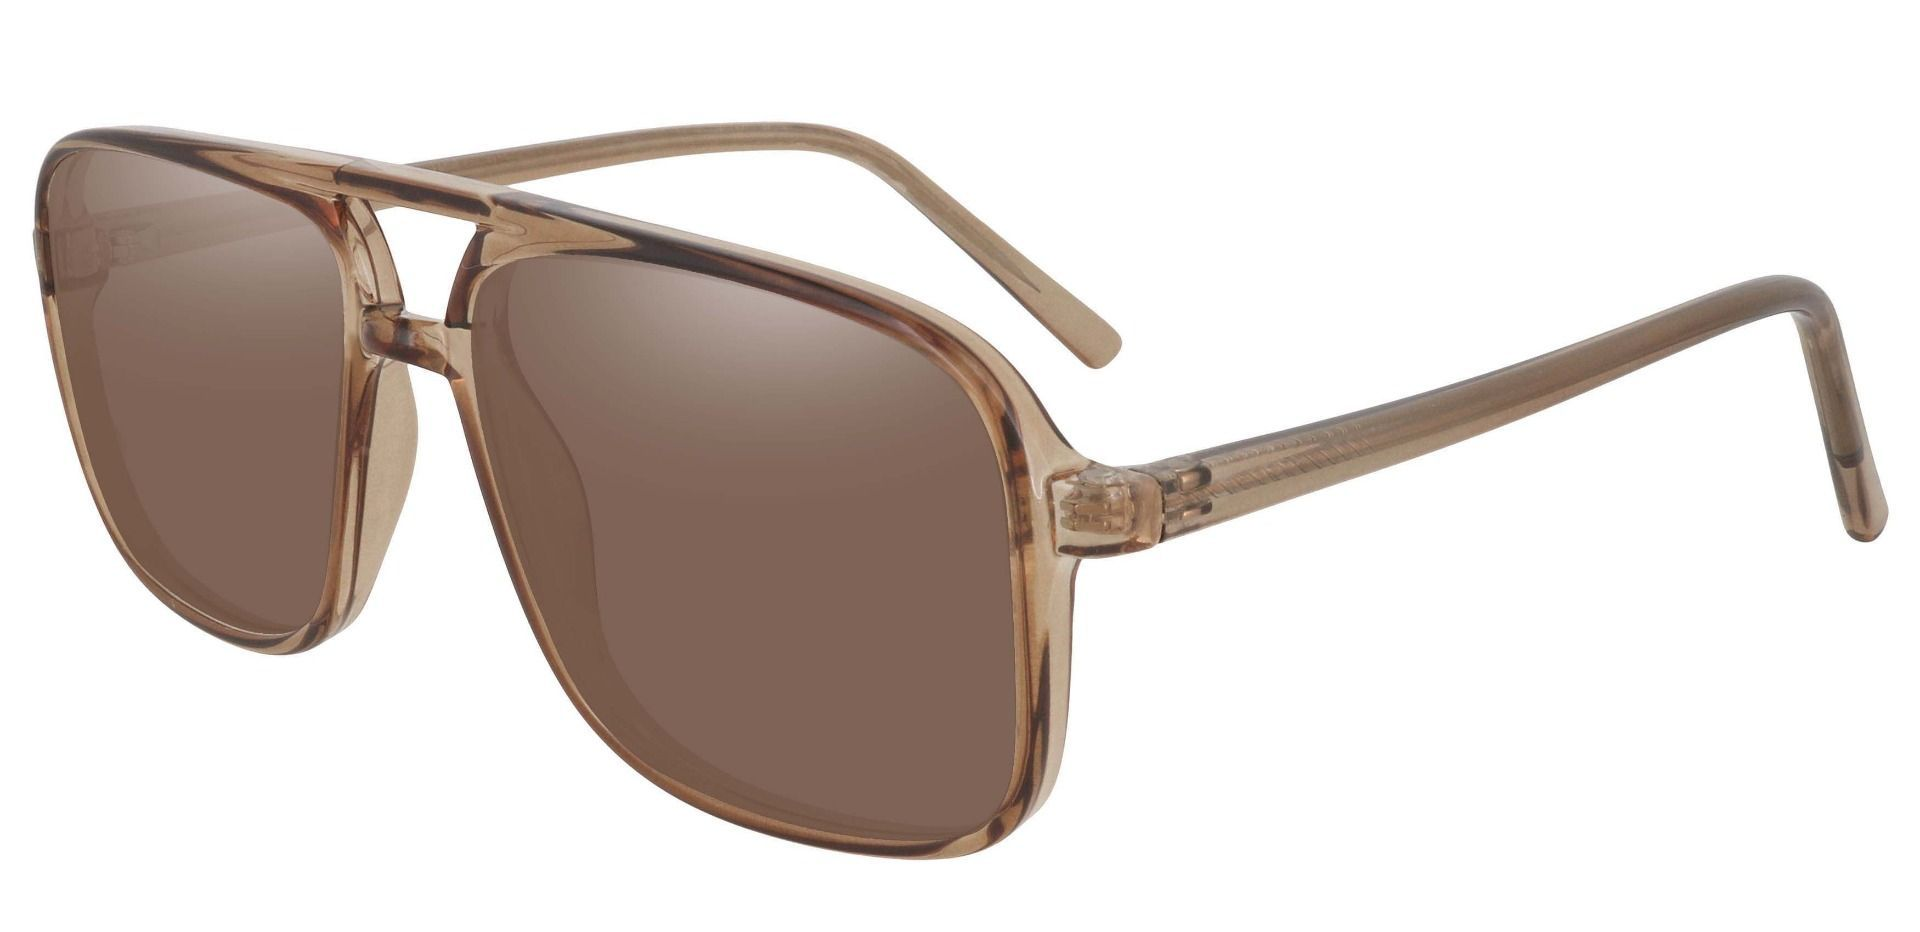 Atwood Aviator Prescription Sunglasses - Brown Frame With Brown Lenses